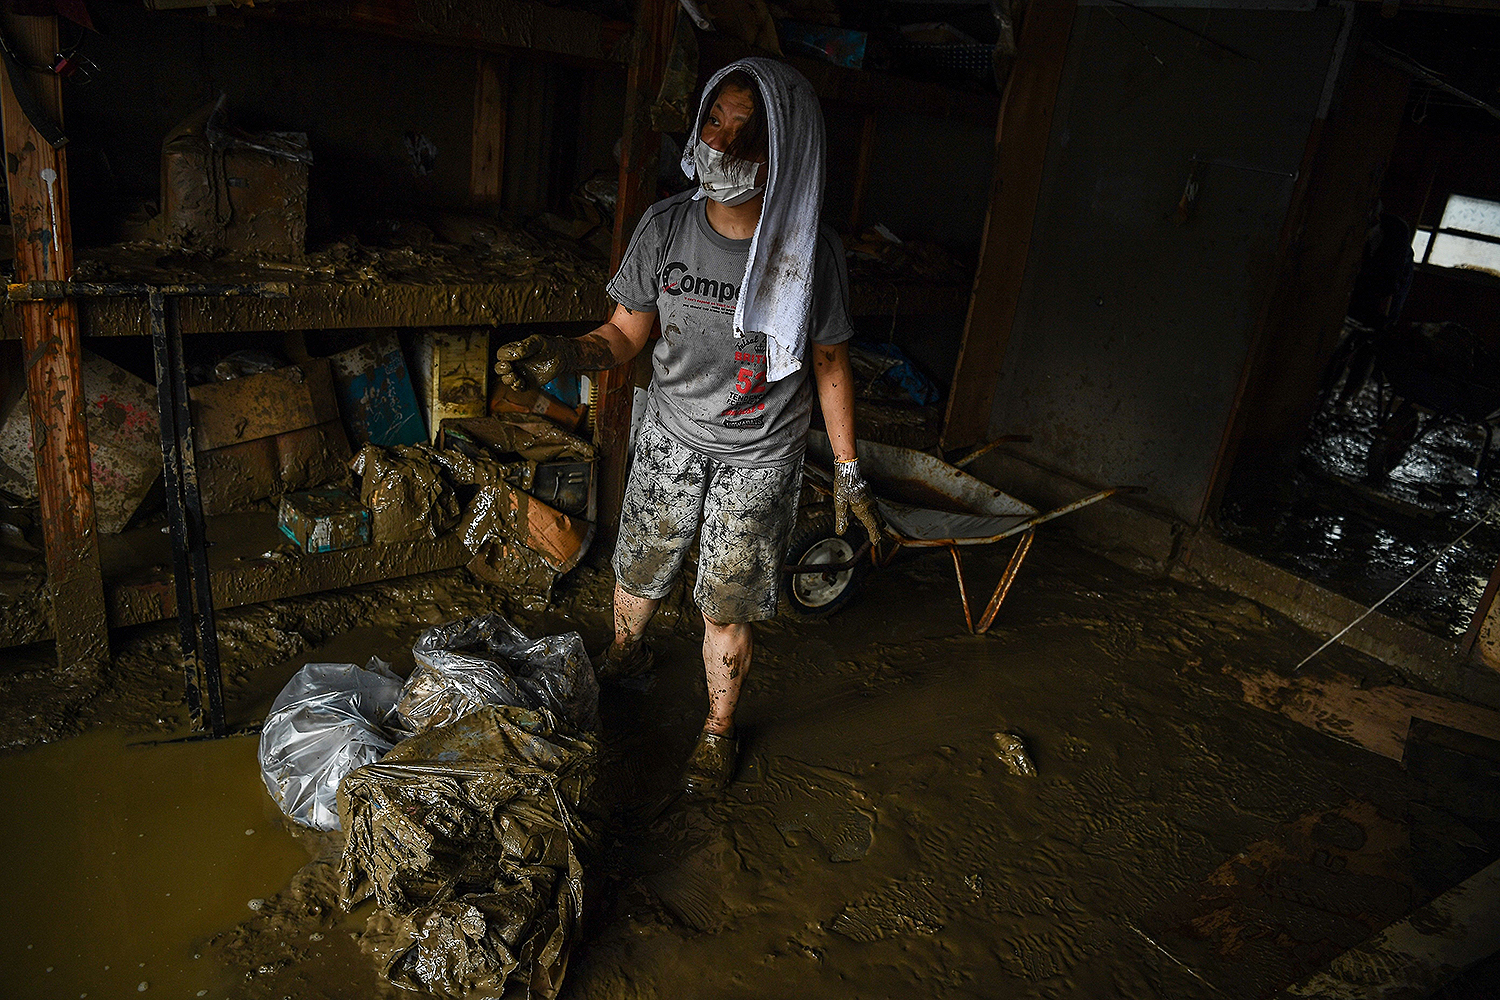 A resident clears mud from a home in Hitoyoshi, Japan, on July 10 after heavy rains, flooding, and landslides devastated the region. CHARLY TRIBALLEAU/AFP via Getty Images